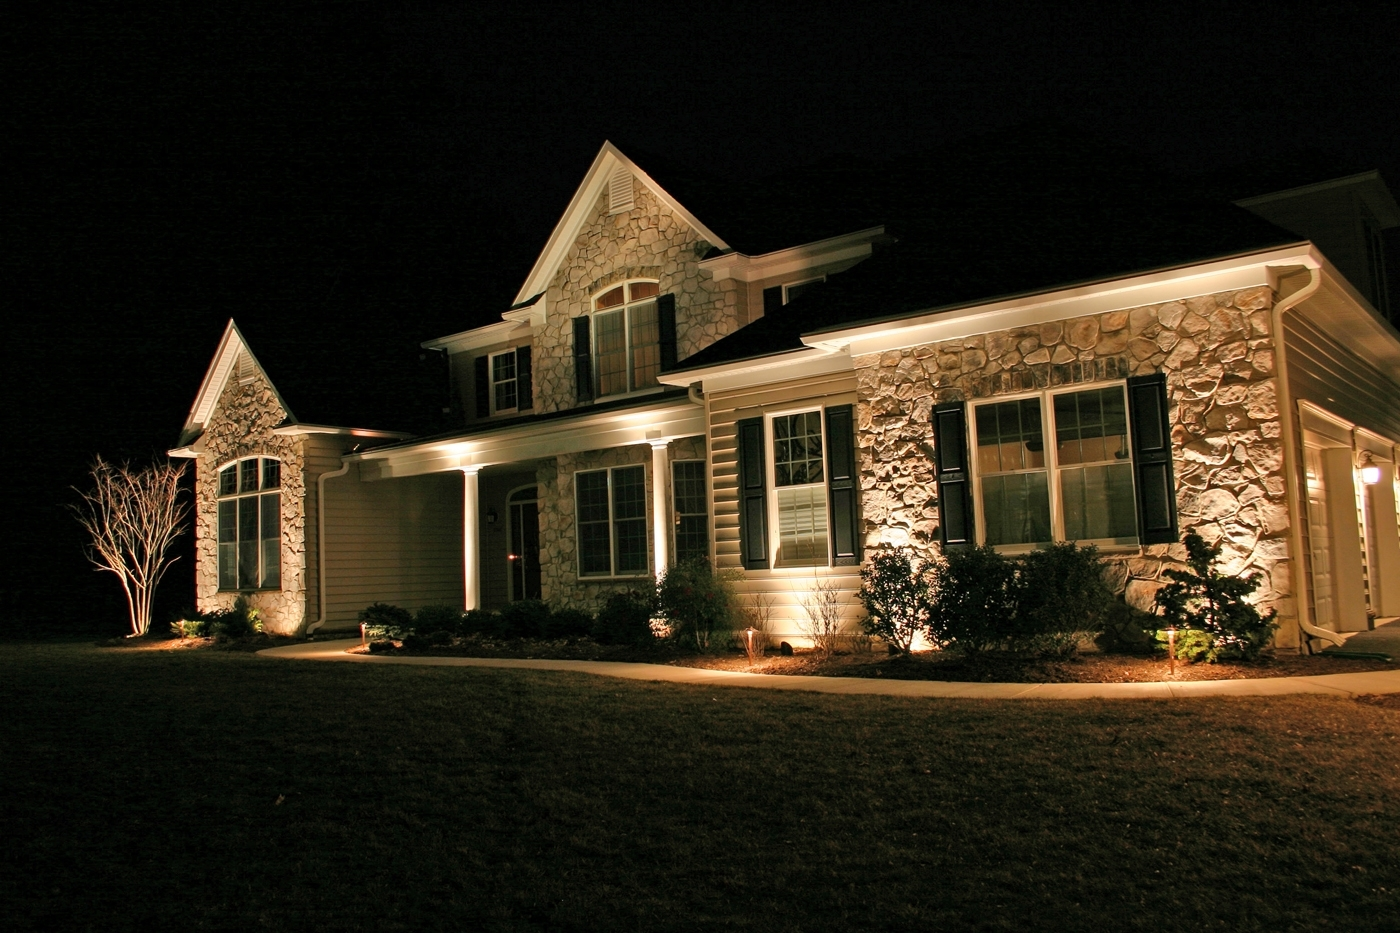 Well Known Outdoor Wall Wash Lighting Fixtures Regarding Wall Washing Lighting. Wall Washing Lighting F – Socopi (View 17 of 20)